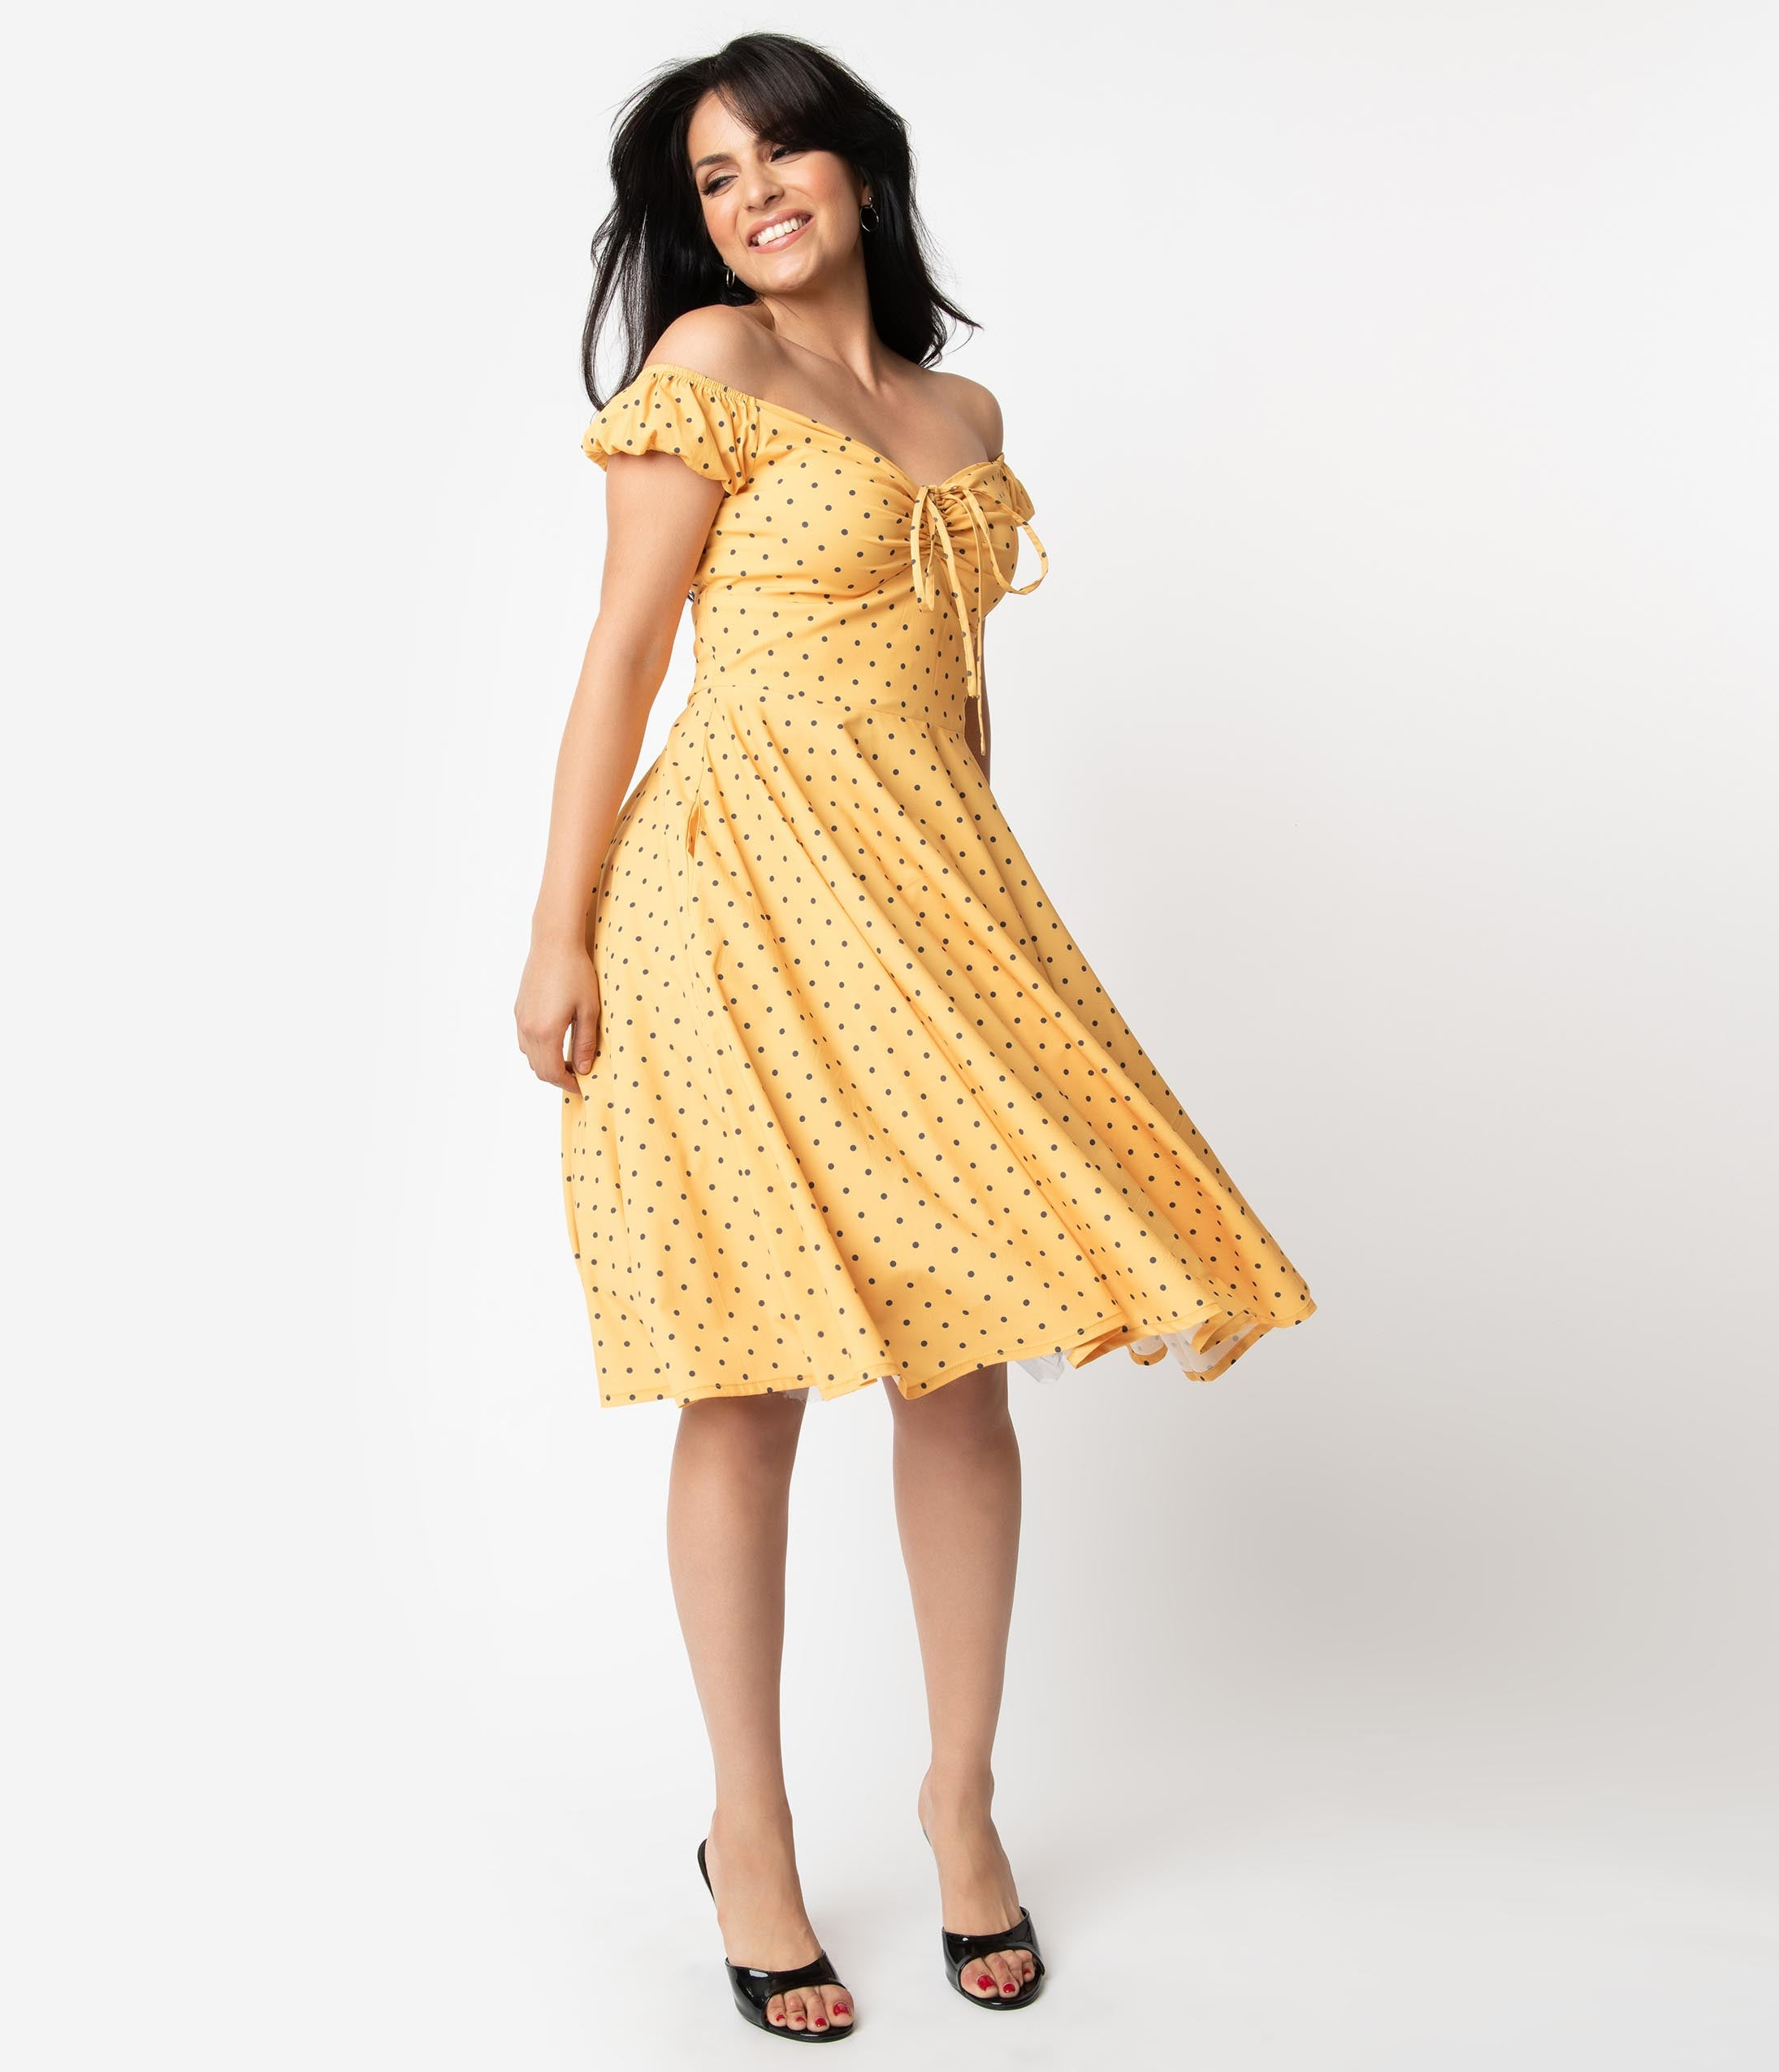 Fifties Dresses : 1950s Style Swing to Wiggle Dresses Mustard Yellow  Black Polka Dot Off Shoulder Amerie Swing Dress $68.00 AT vintagedancer.com